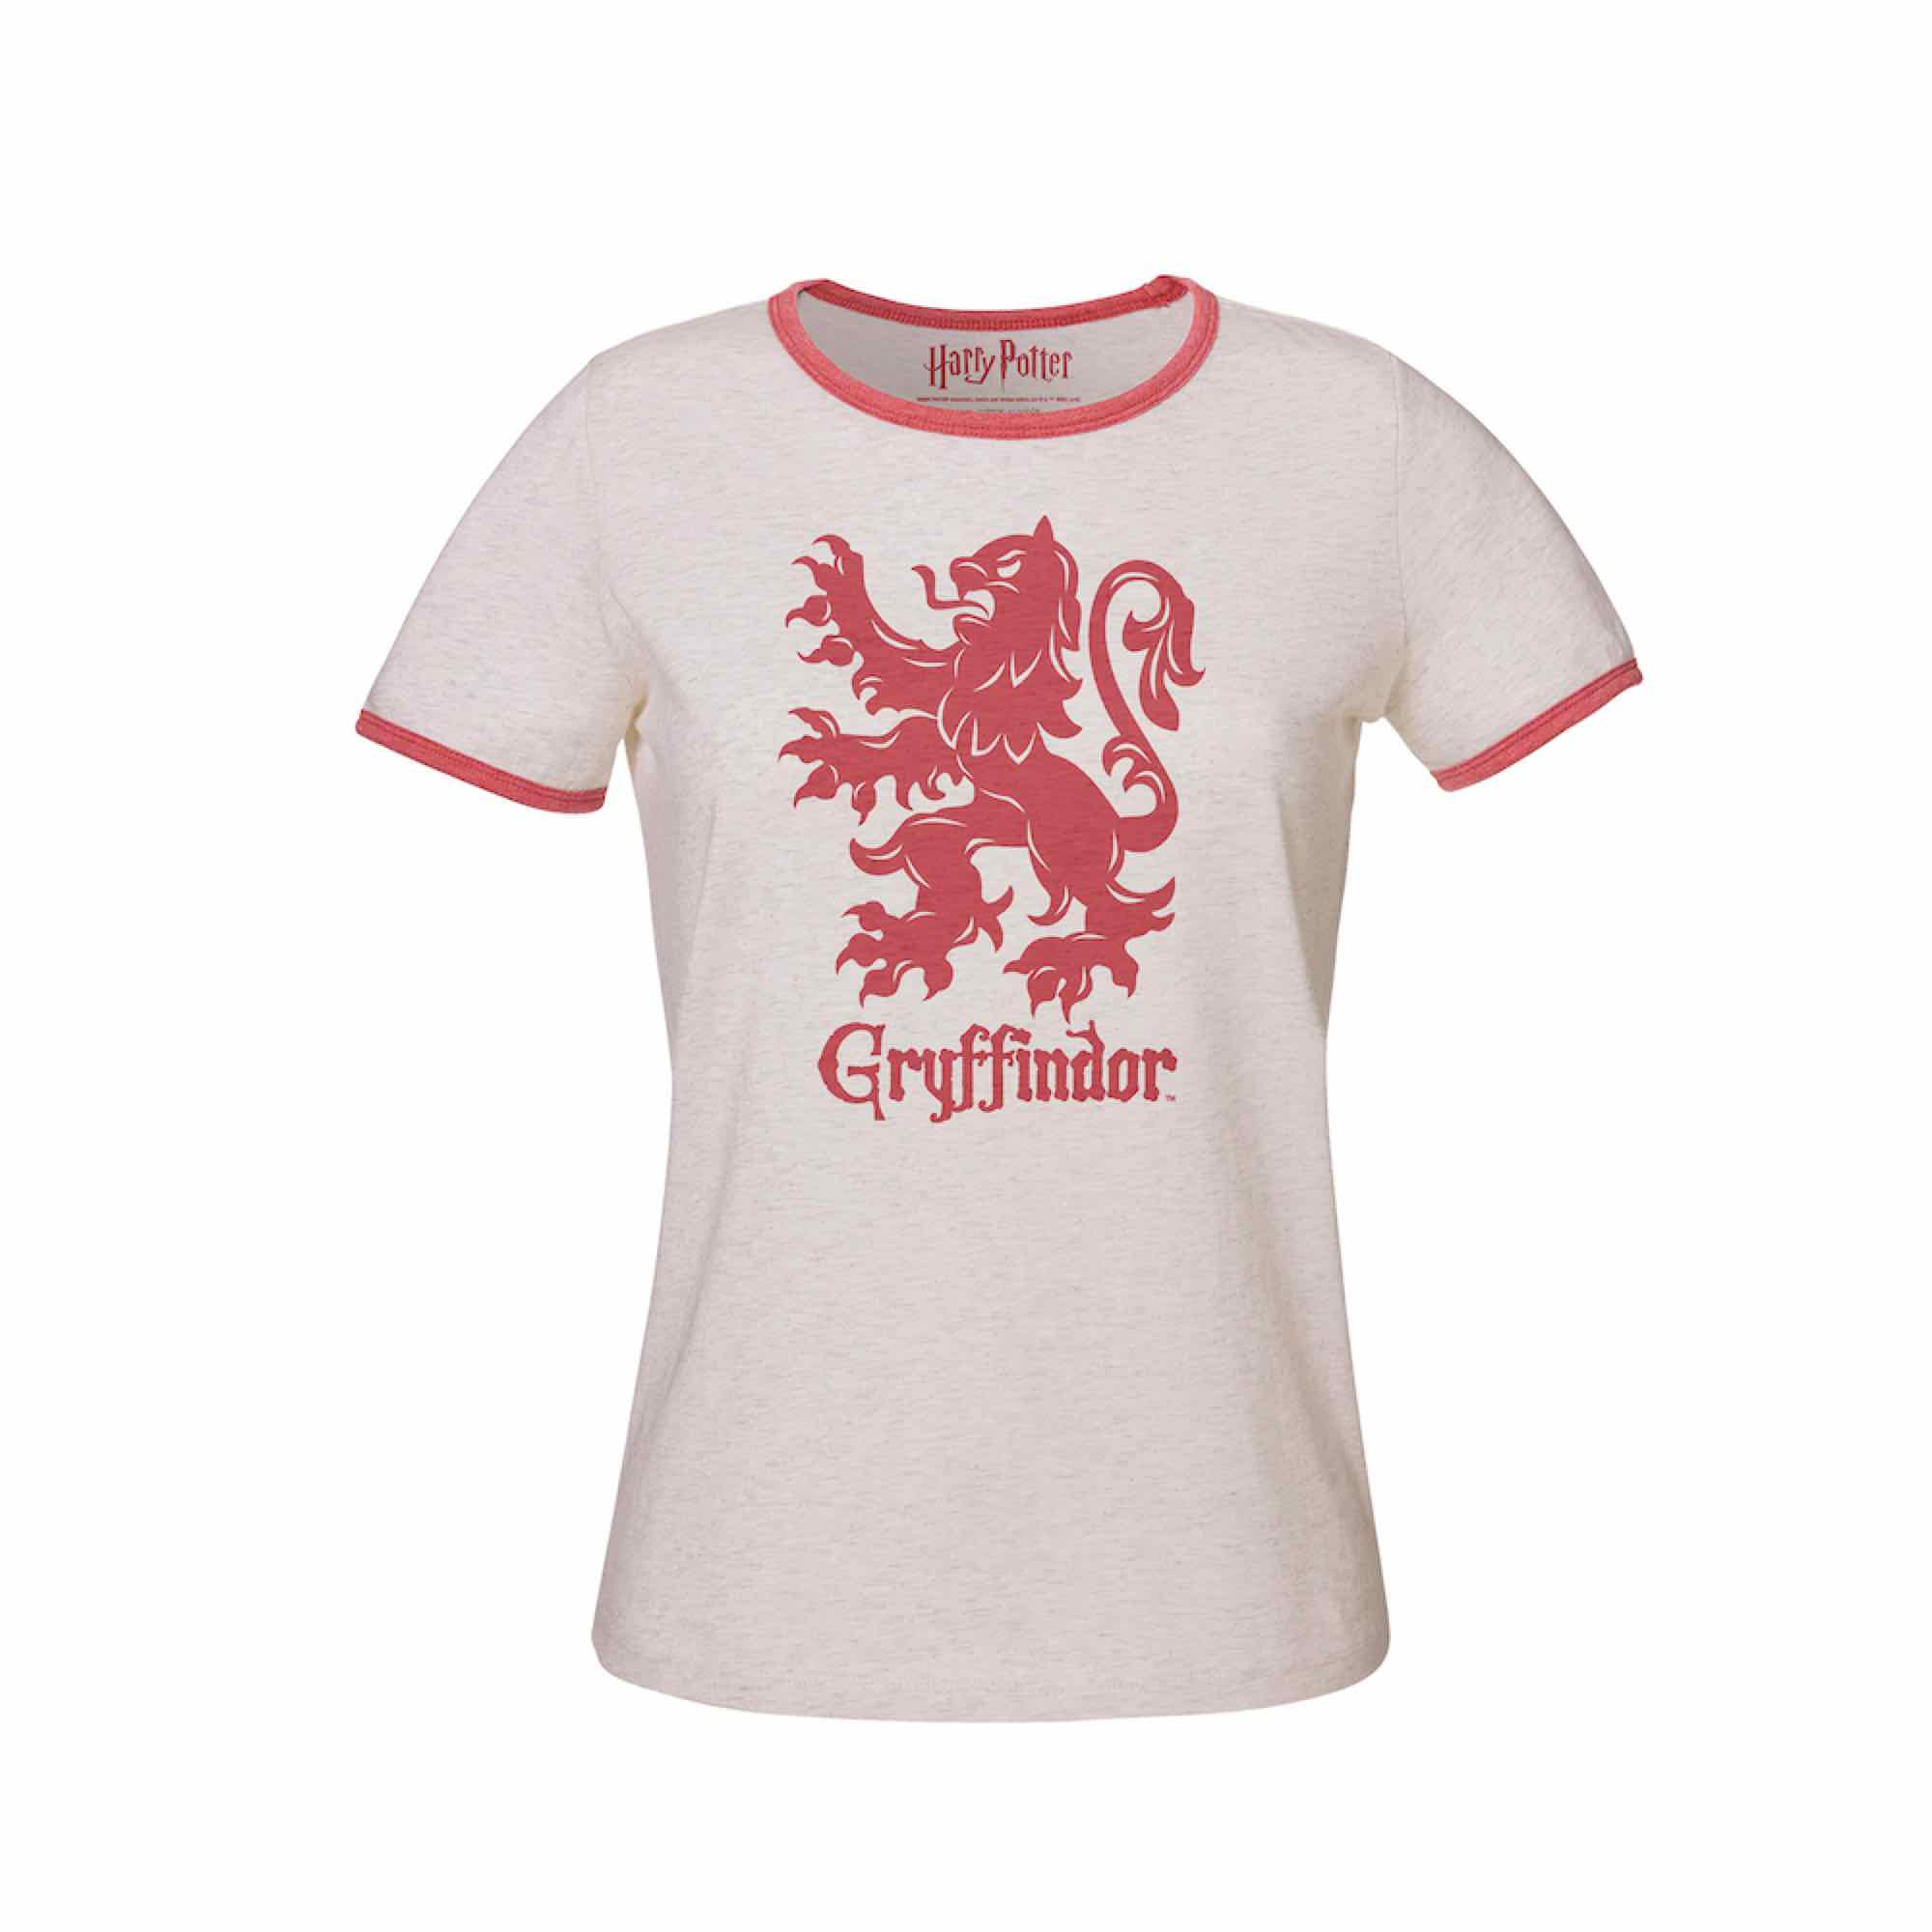 GRYFFINDOR T-M CAMISETA BLANCA CHICA HARRY POTTER